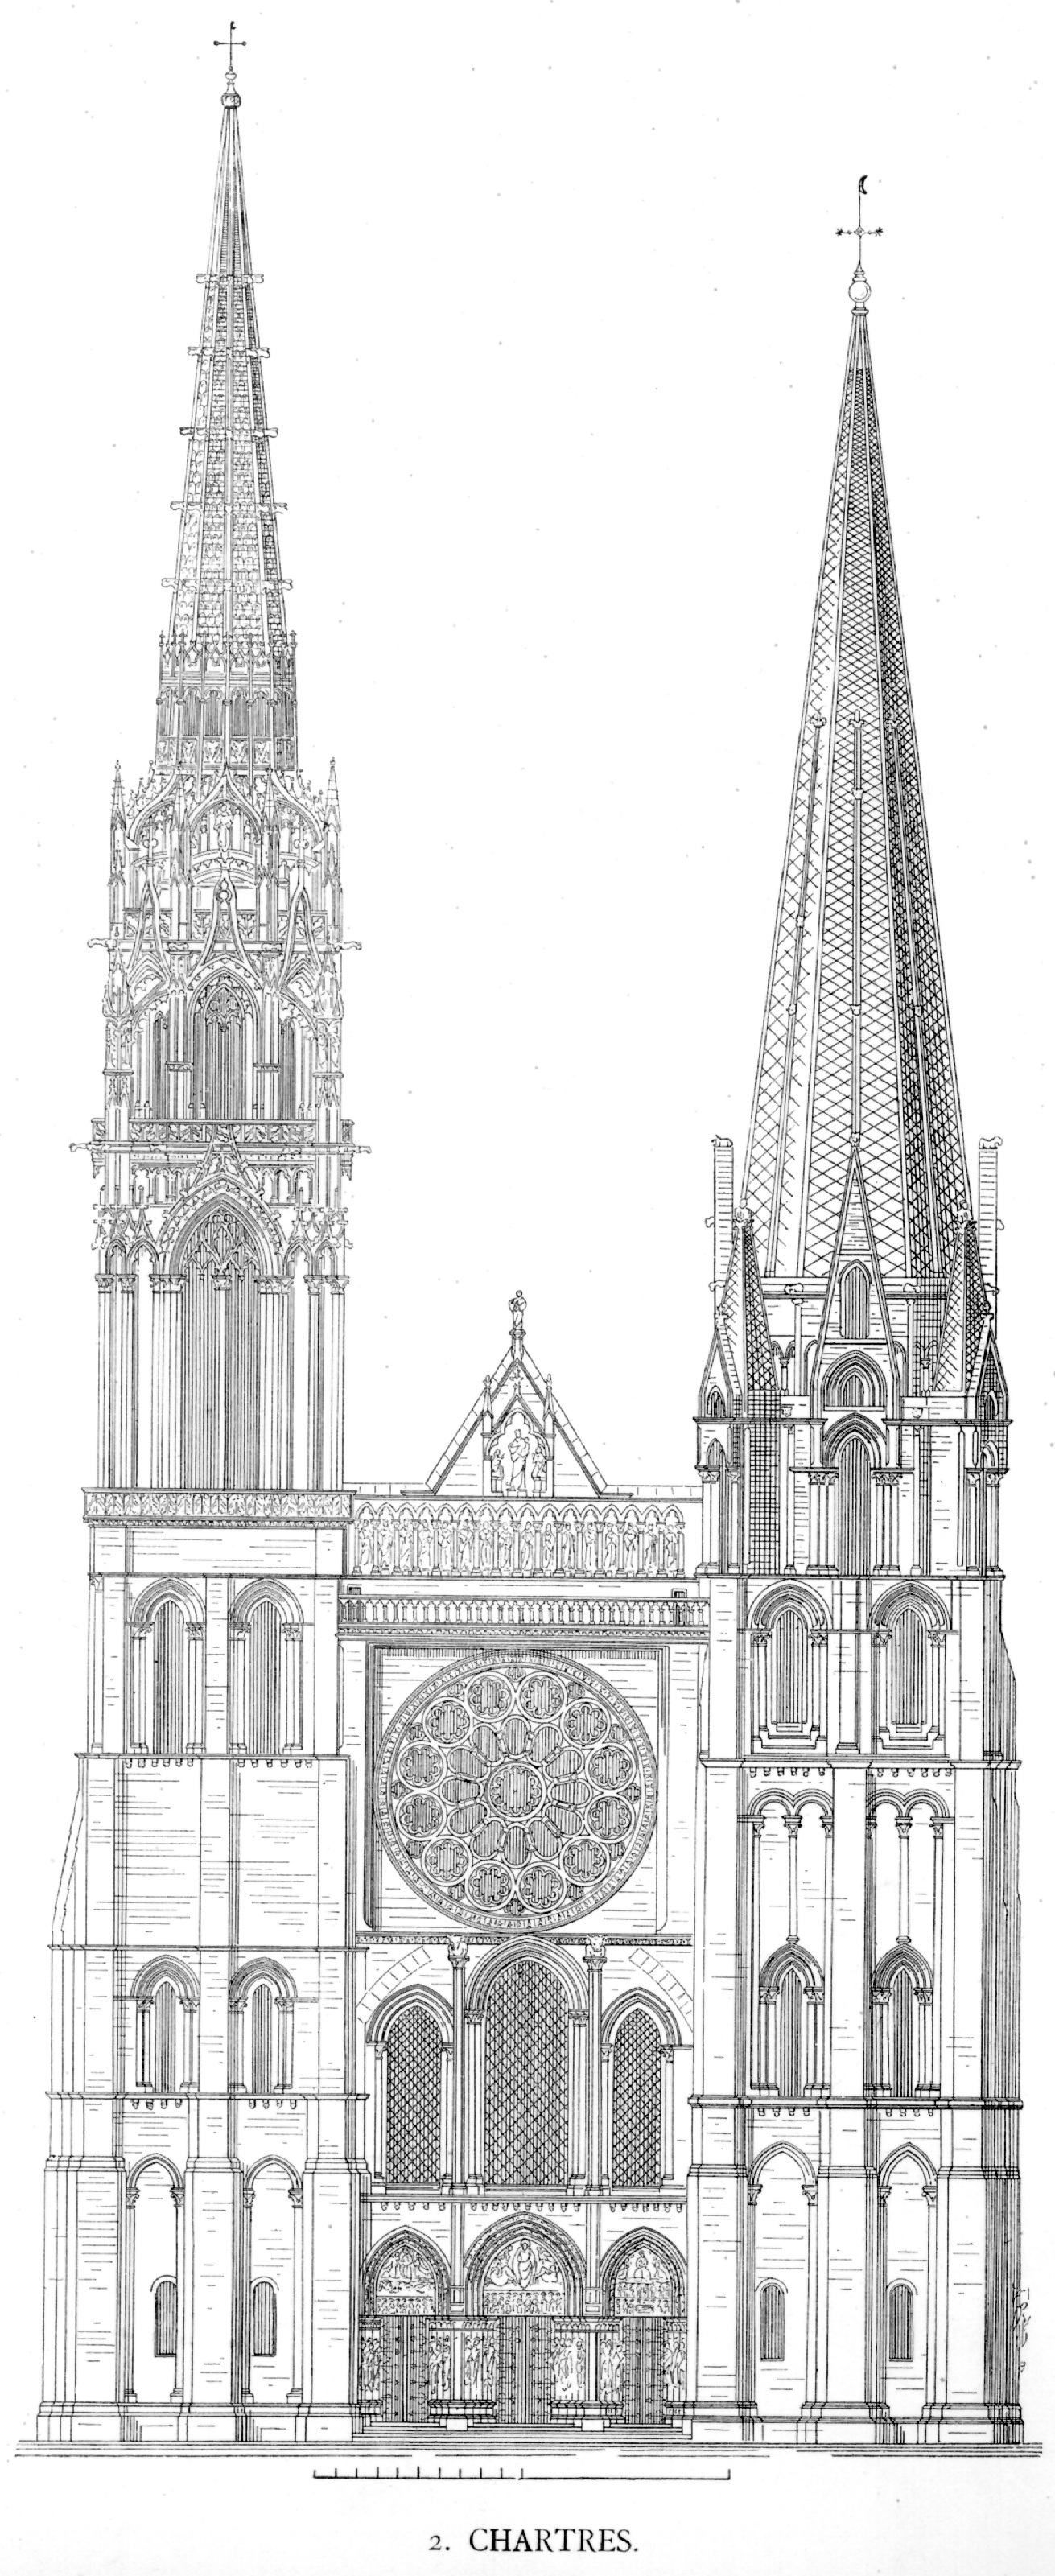 IMAGES OF MEDIEVAL ART AND ARCHITECTURE